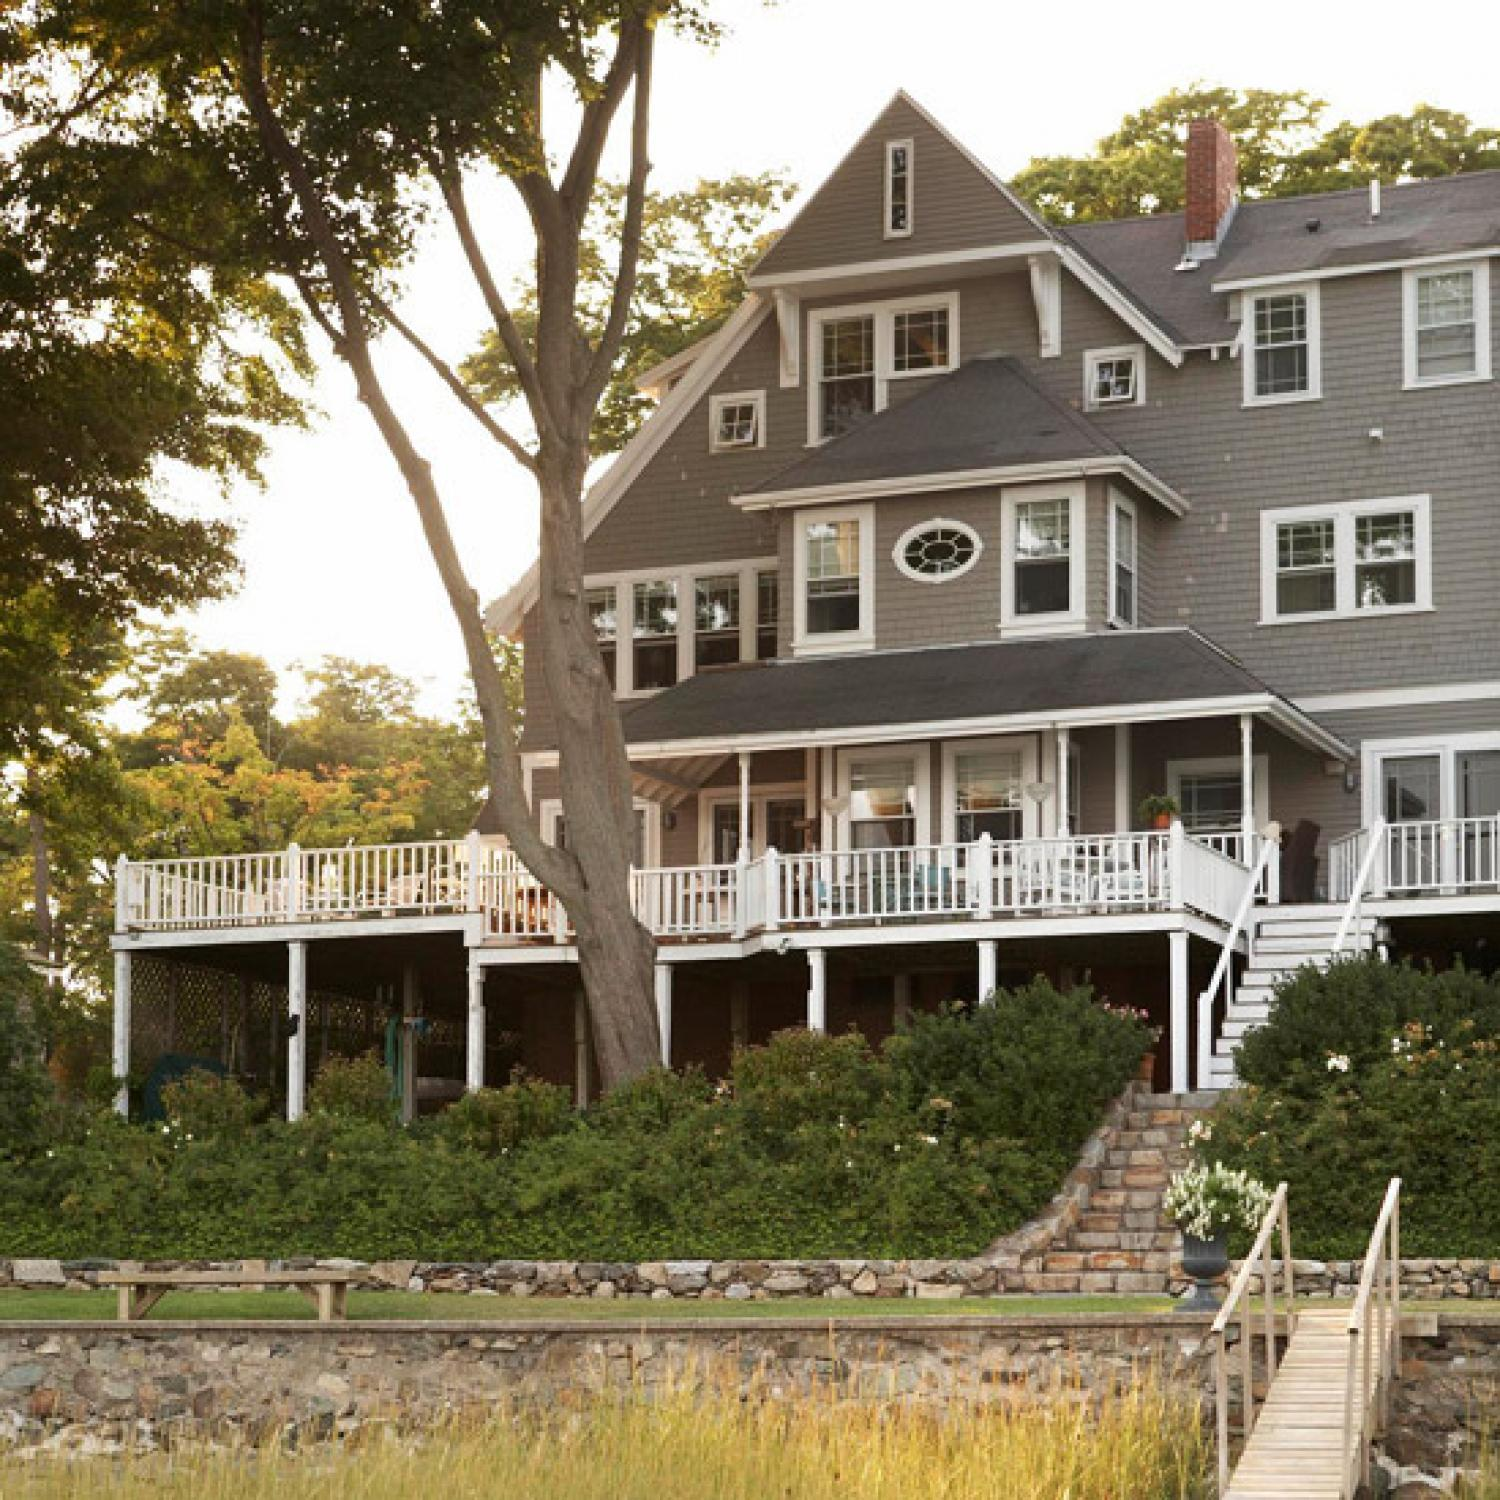 & Get the Look: Shingle Style | Traditional Home